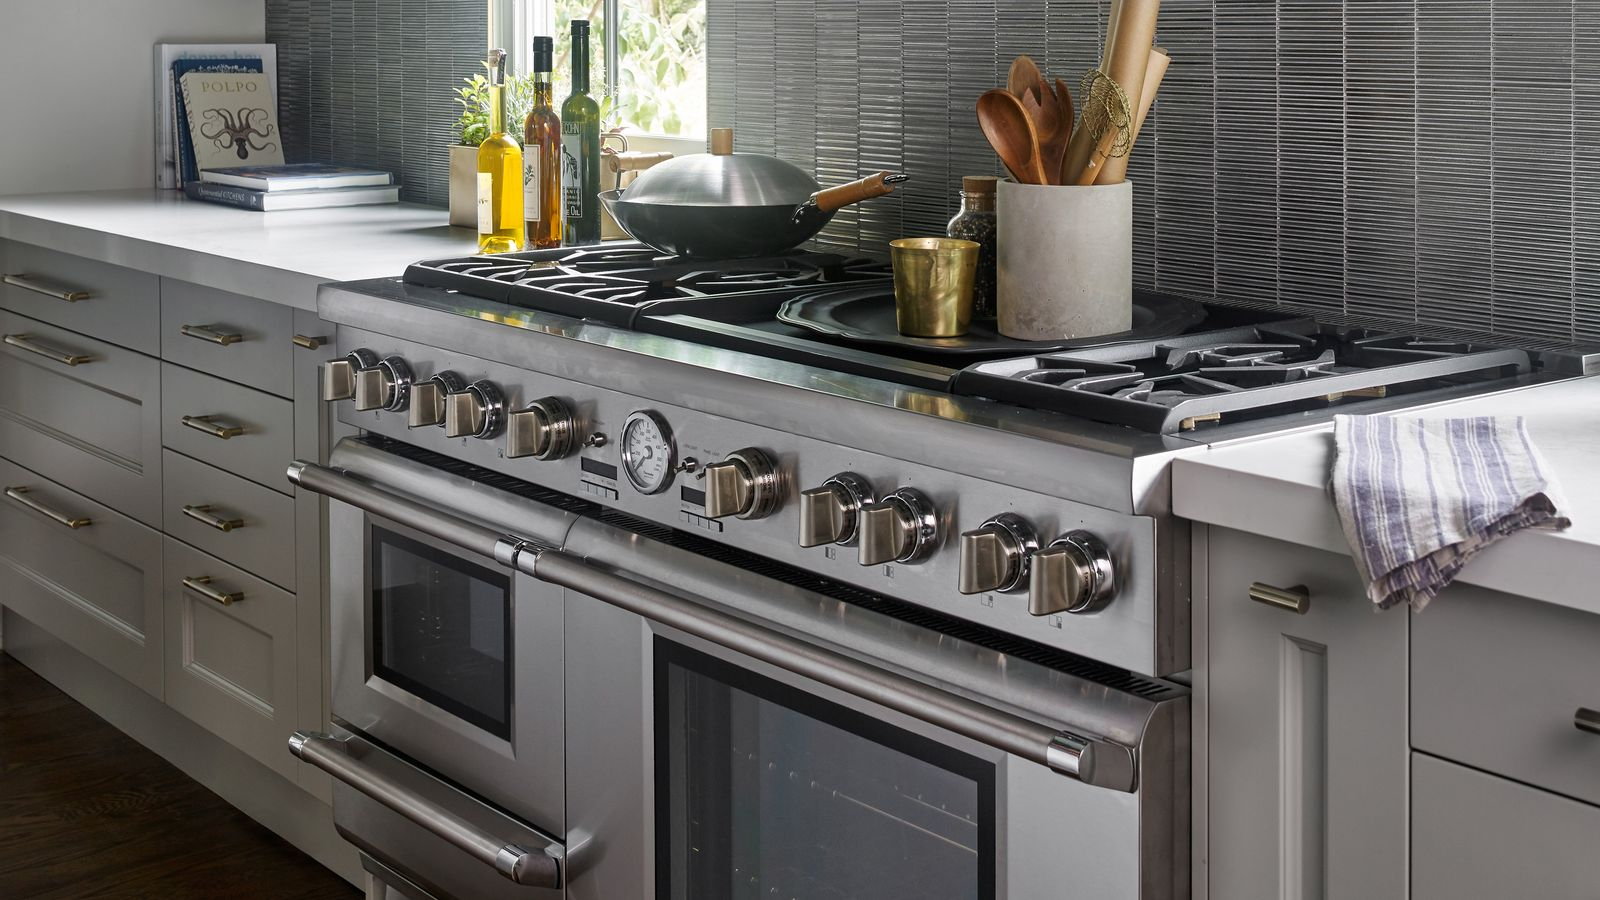 Should Your Kitchen Appliances All Be The Same Brand Avenue Appliance